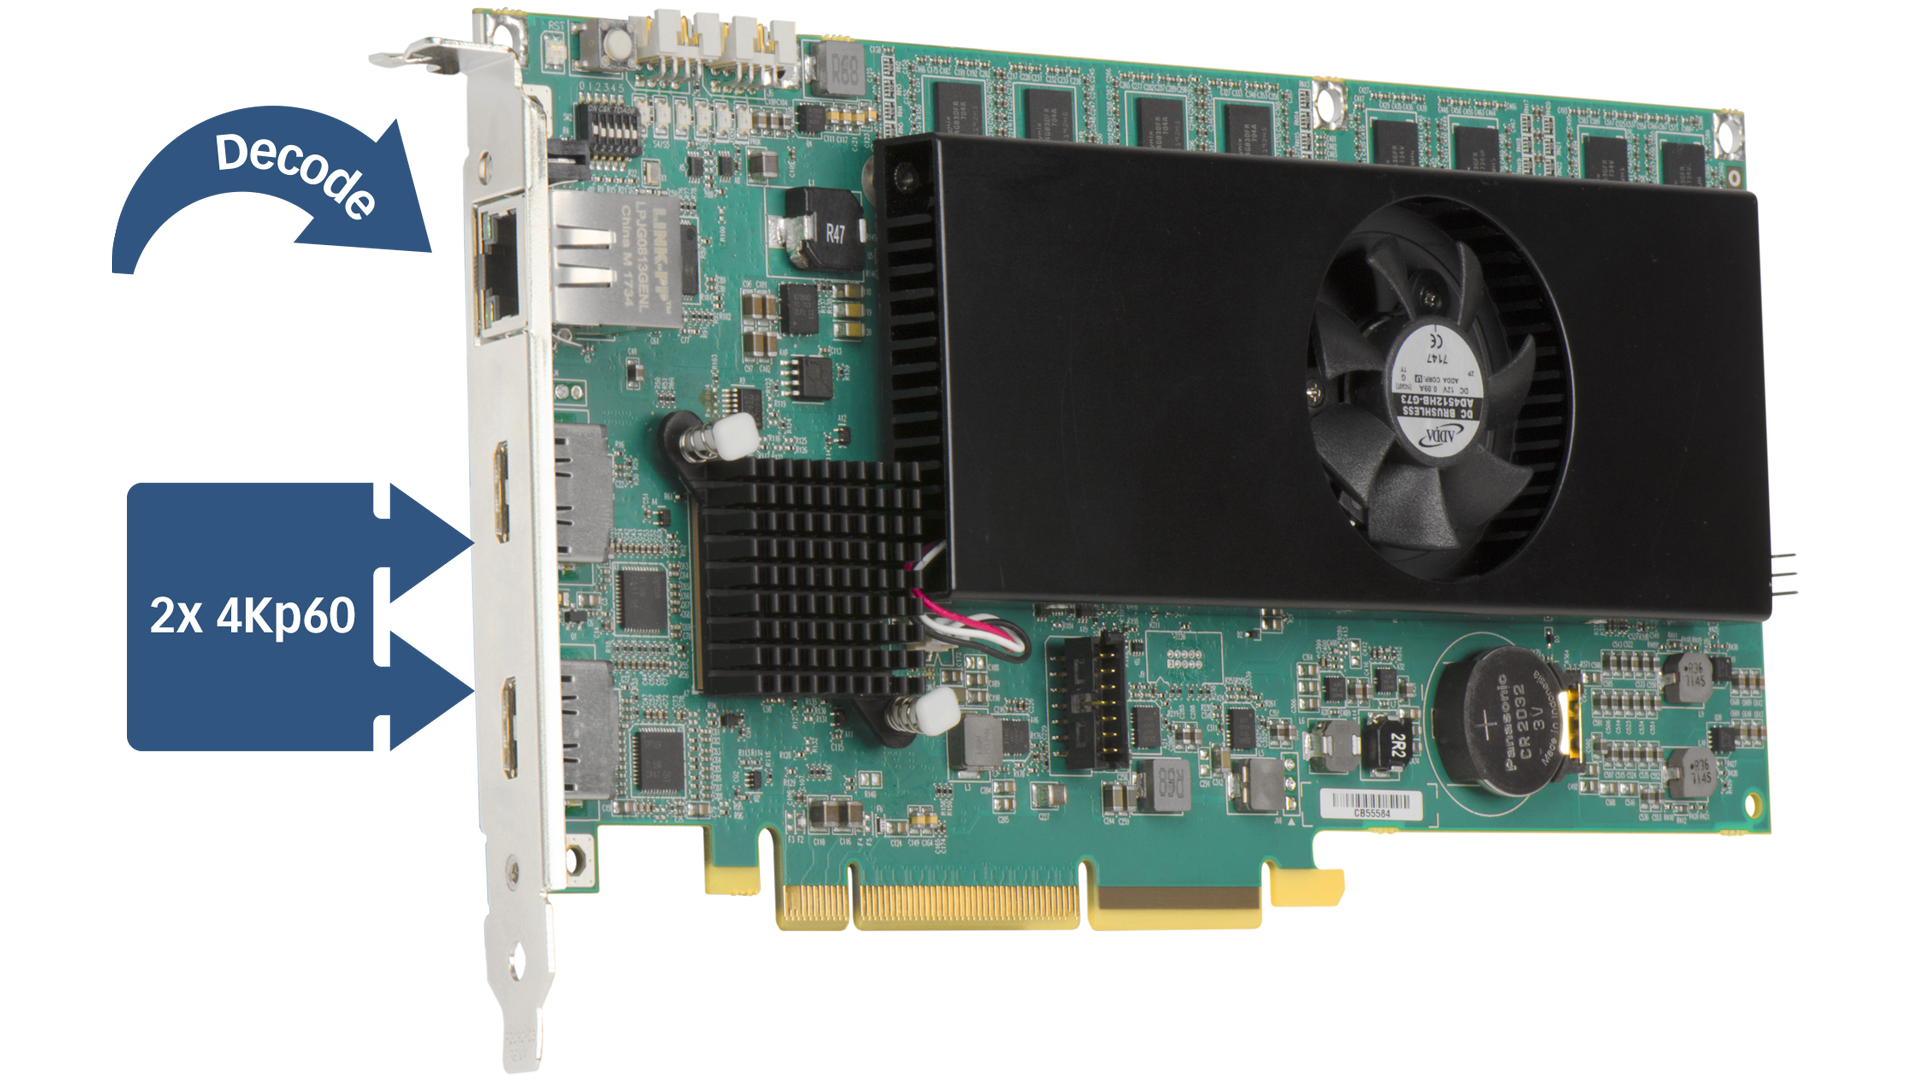 Mura IPX 4K DisplayPort Capture and IP Decode Card